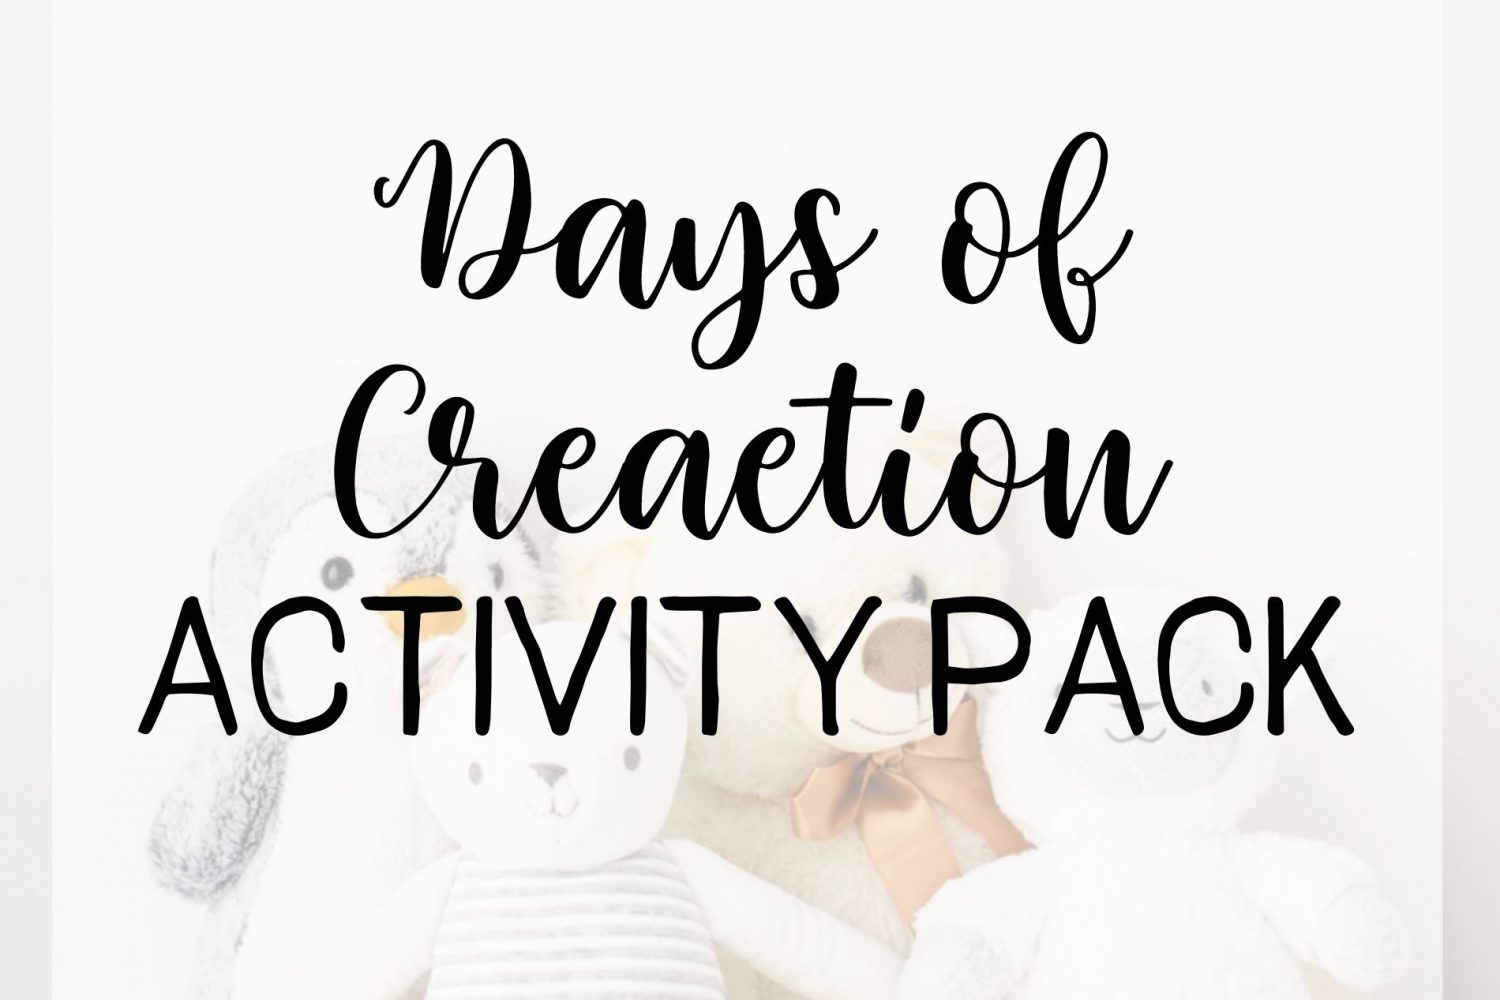 Days of creation Featured Image